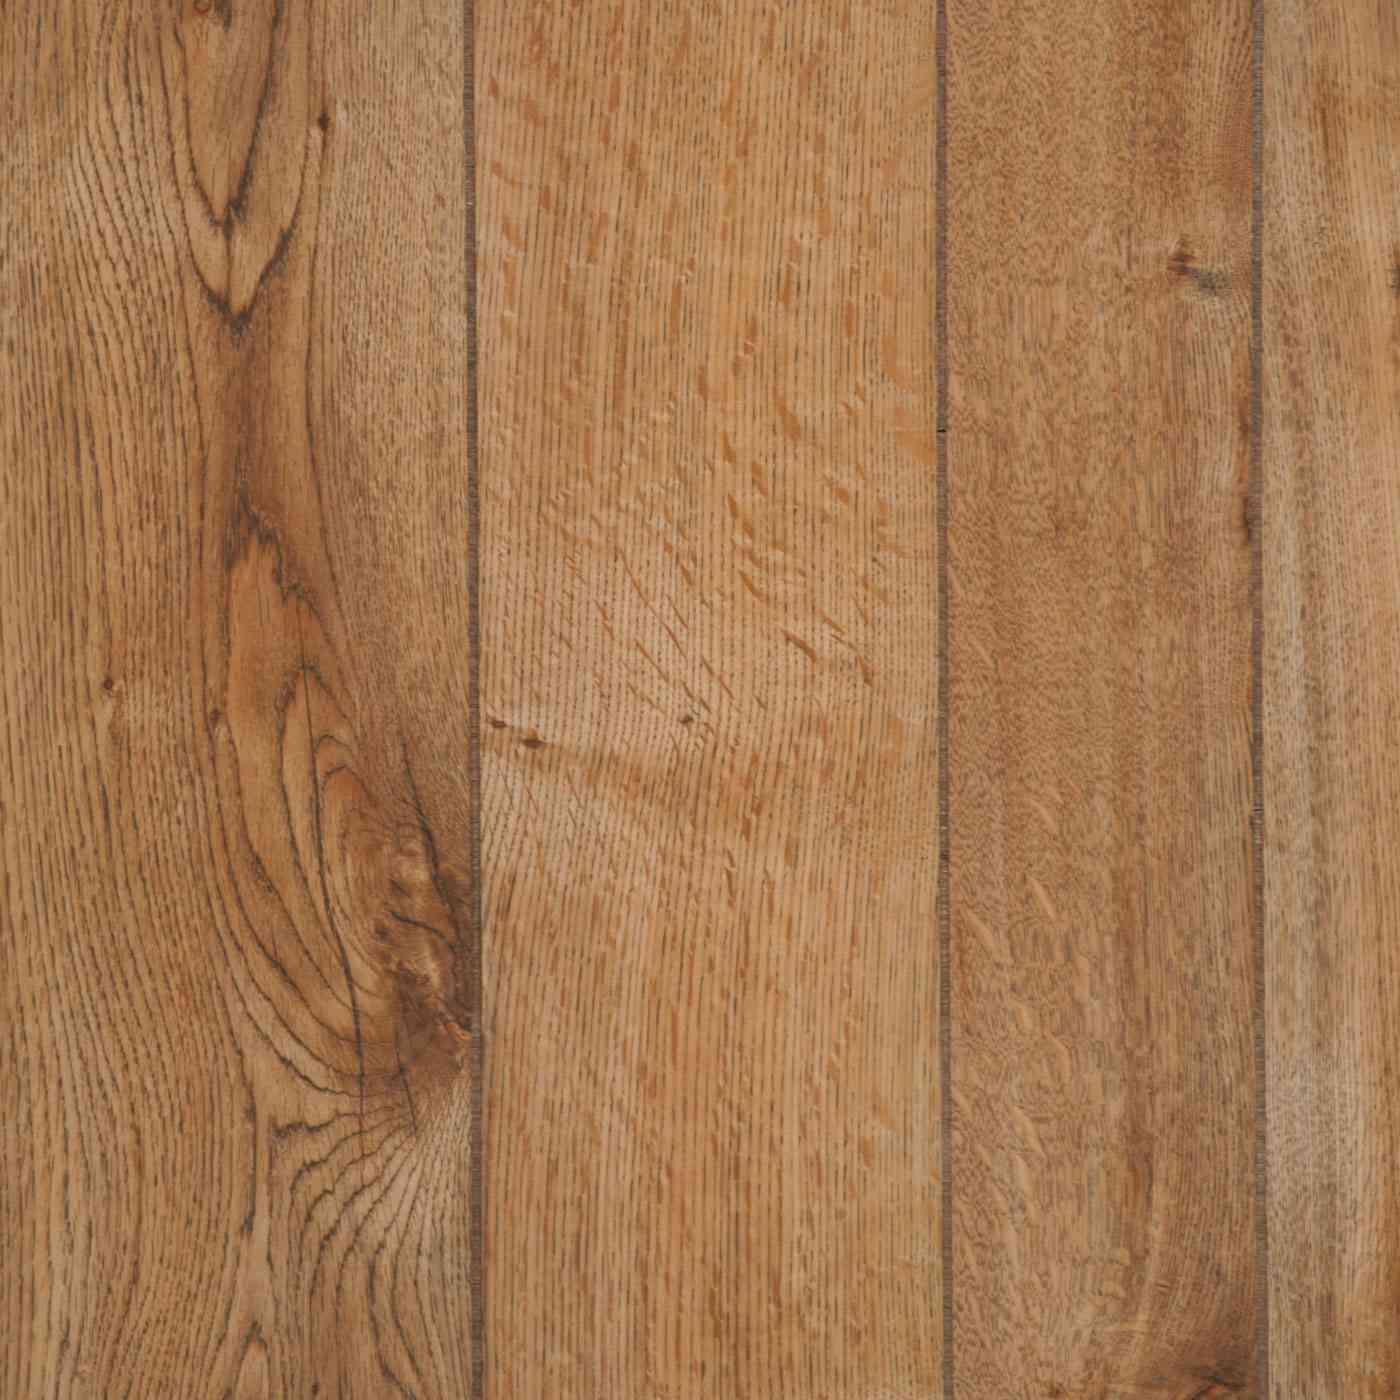 Wood paneling gallant oak wall groove